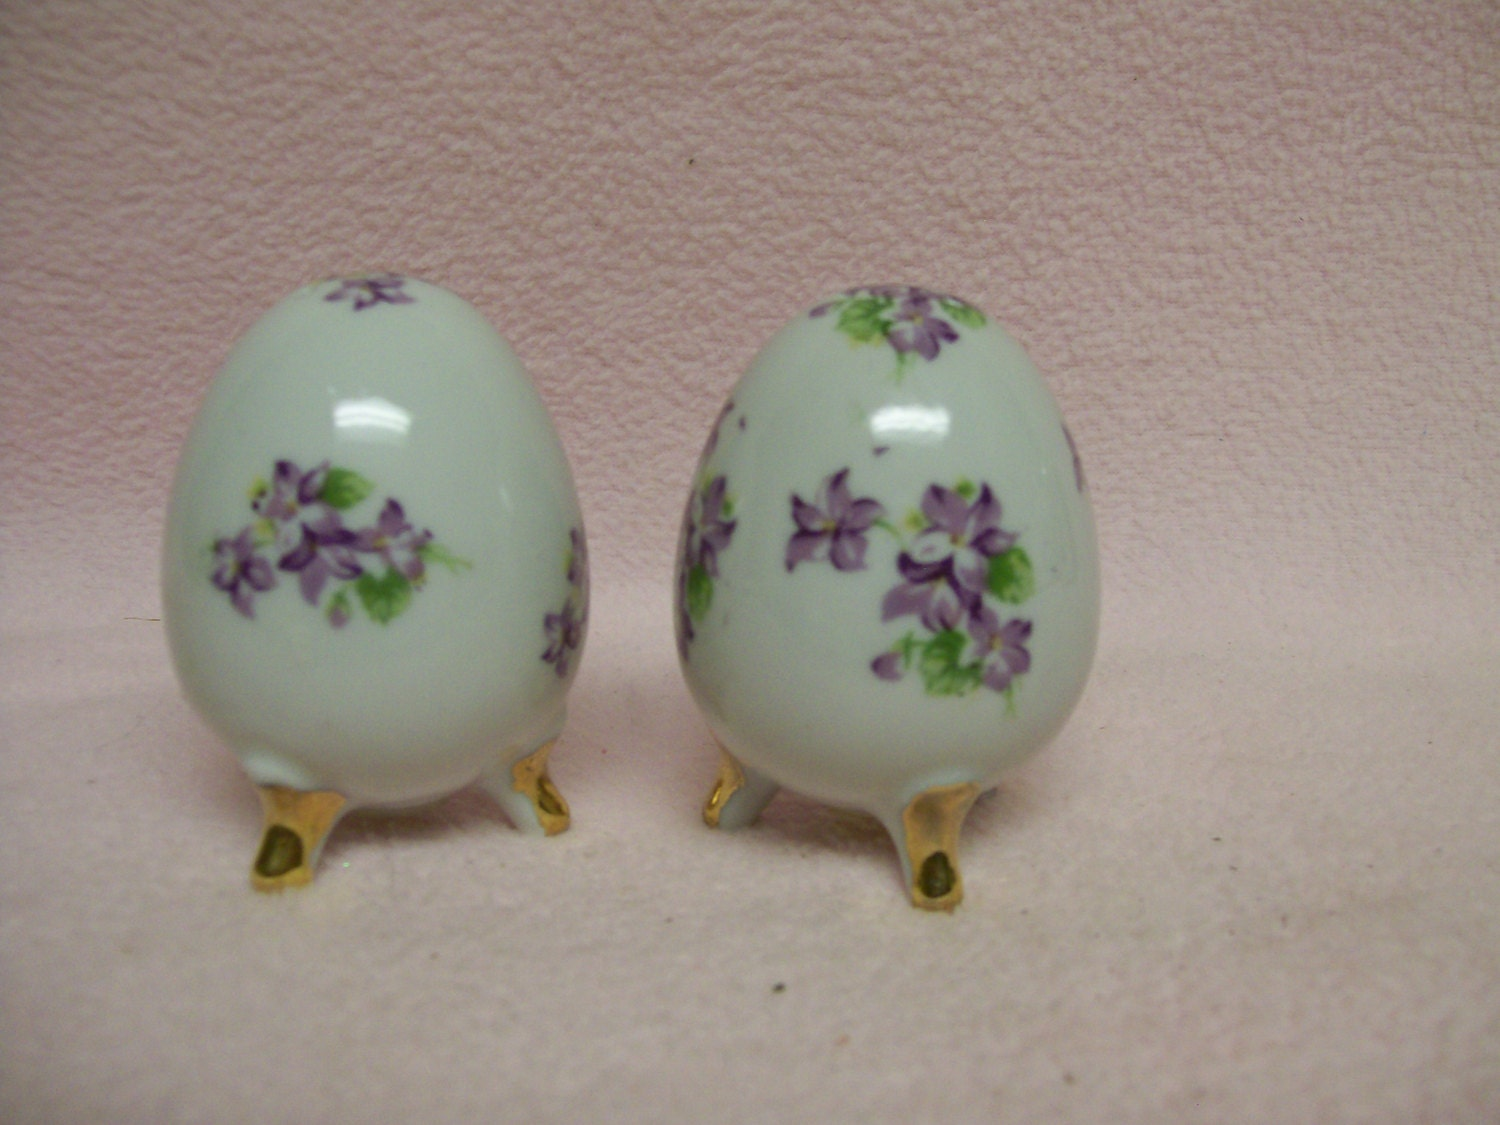 Violet salt pepper shakers egg shaped vintage salt and peppers - Egg shaped salt and pepper shakers ...